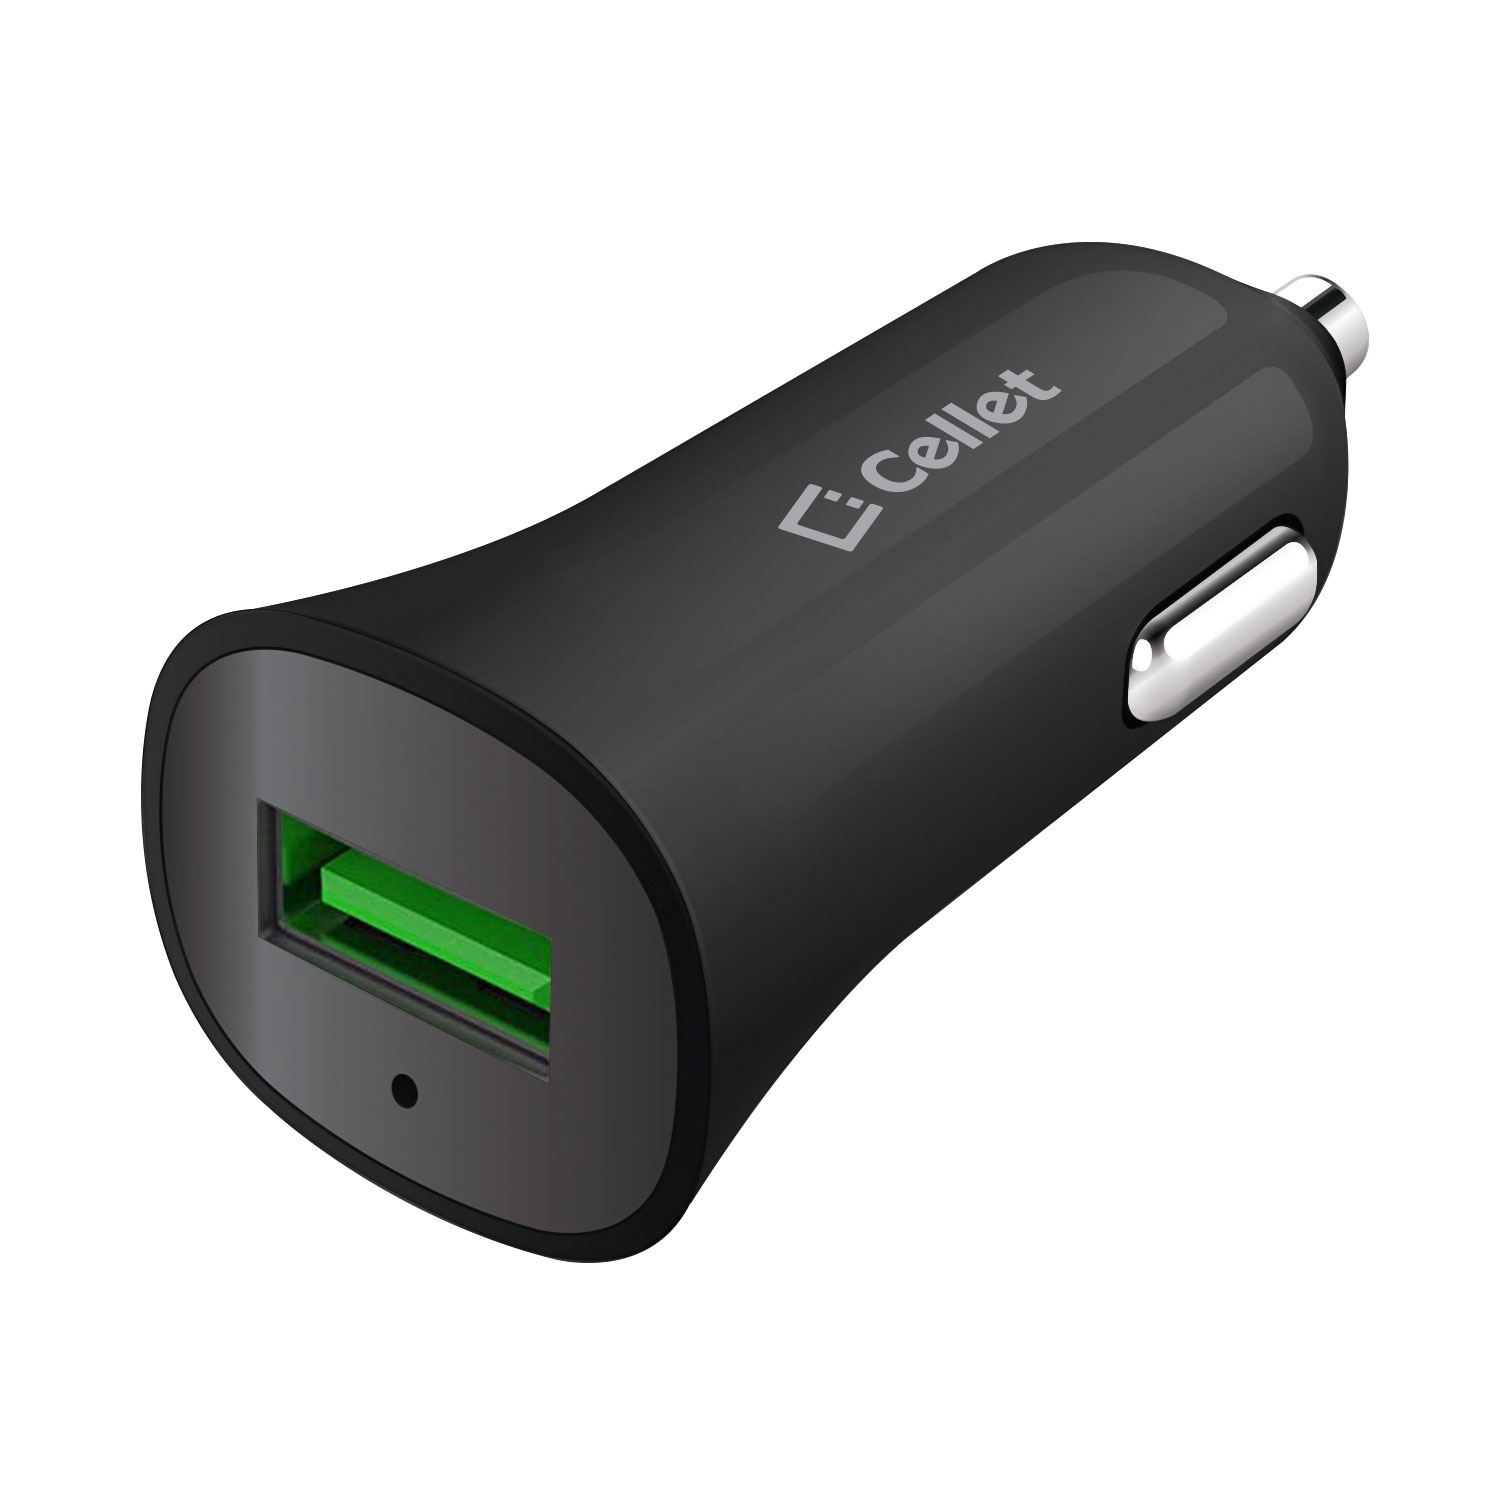 ZTE Prestige II Car Charger Quick Charge 3.0 Black 3.3ft